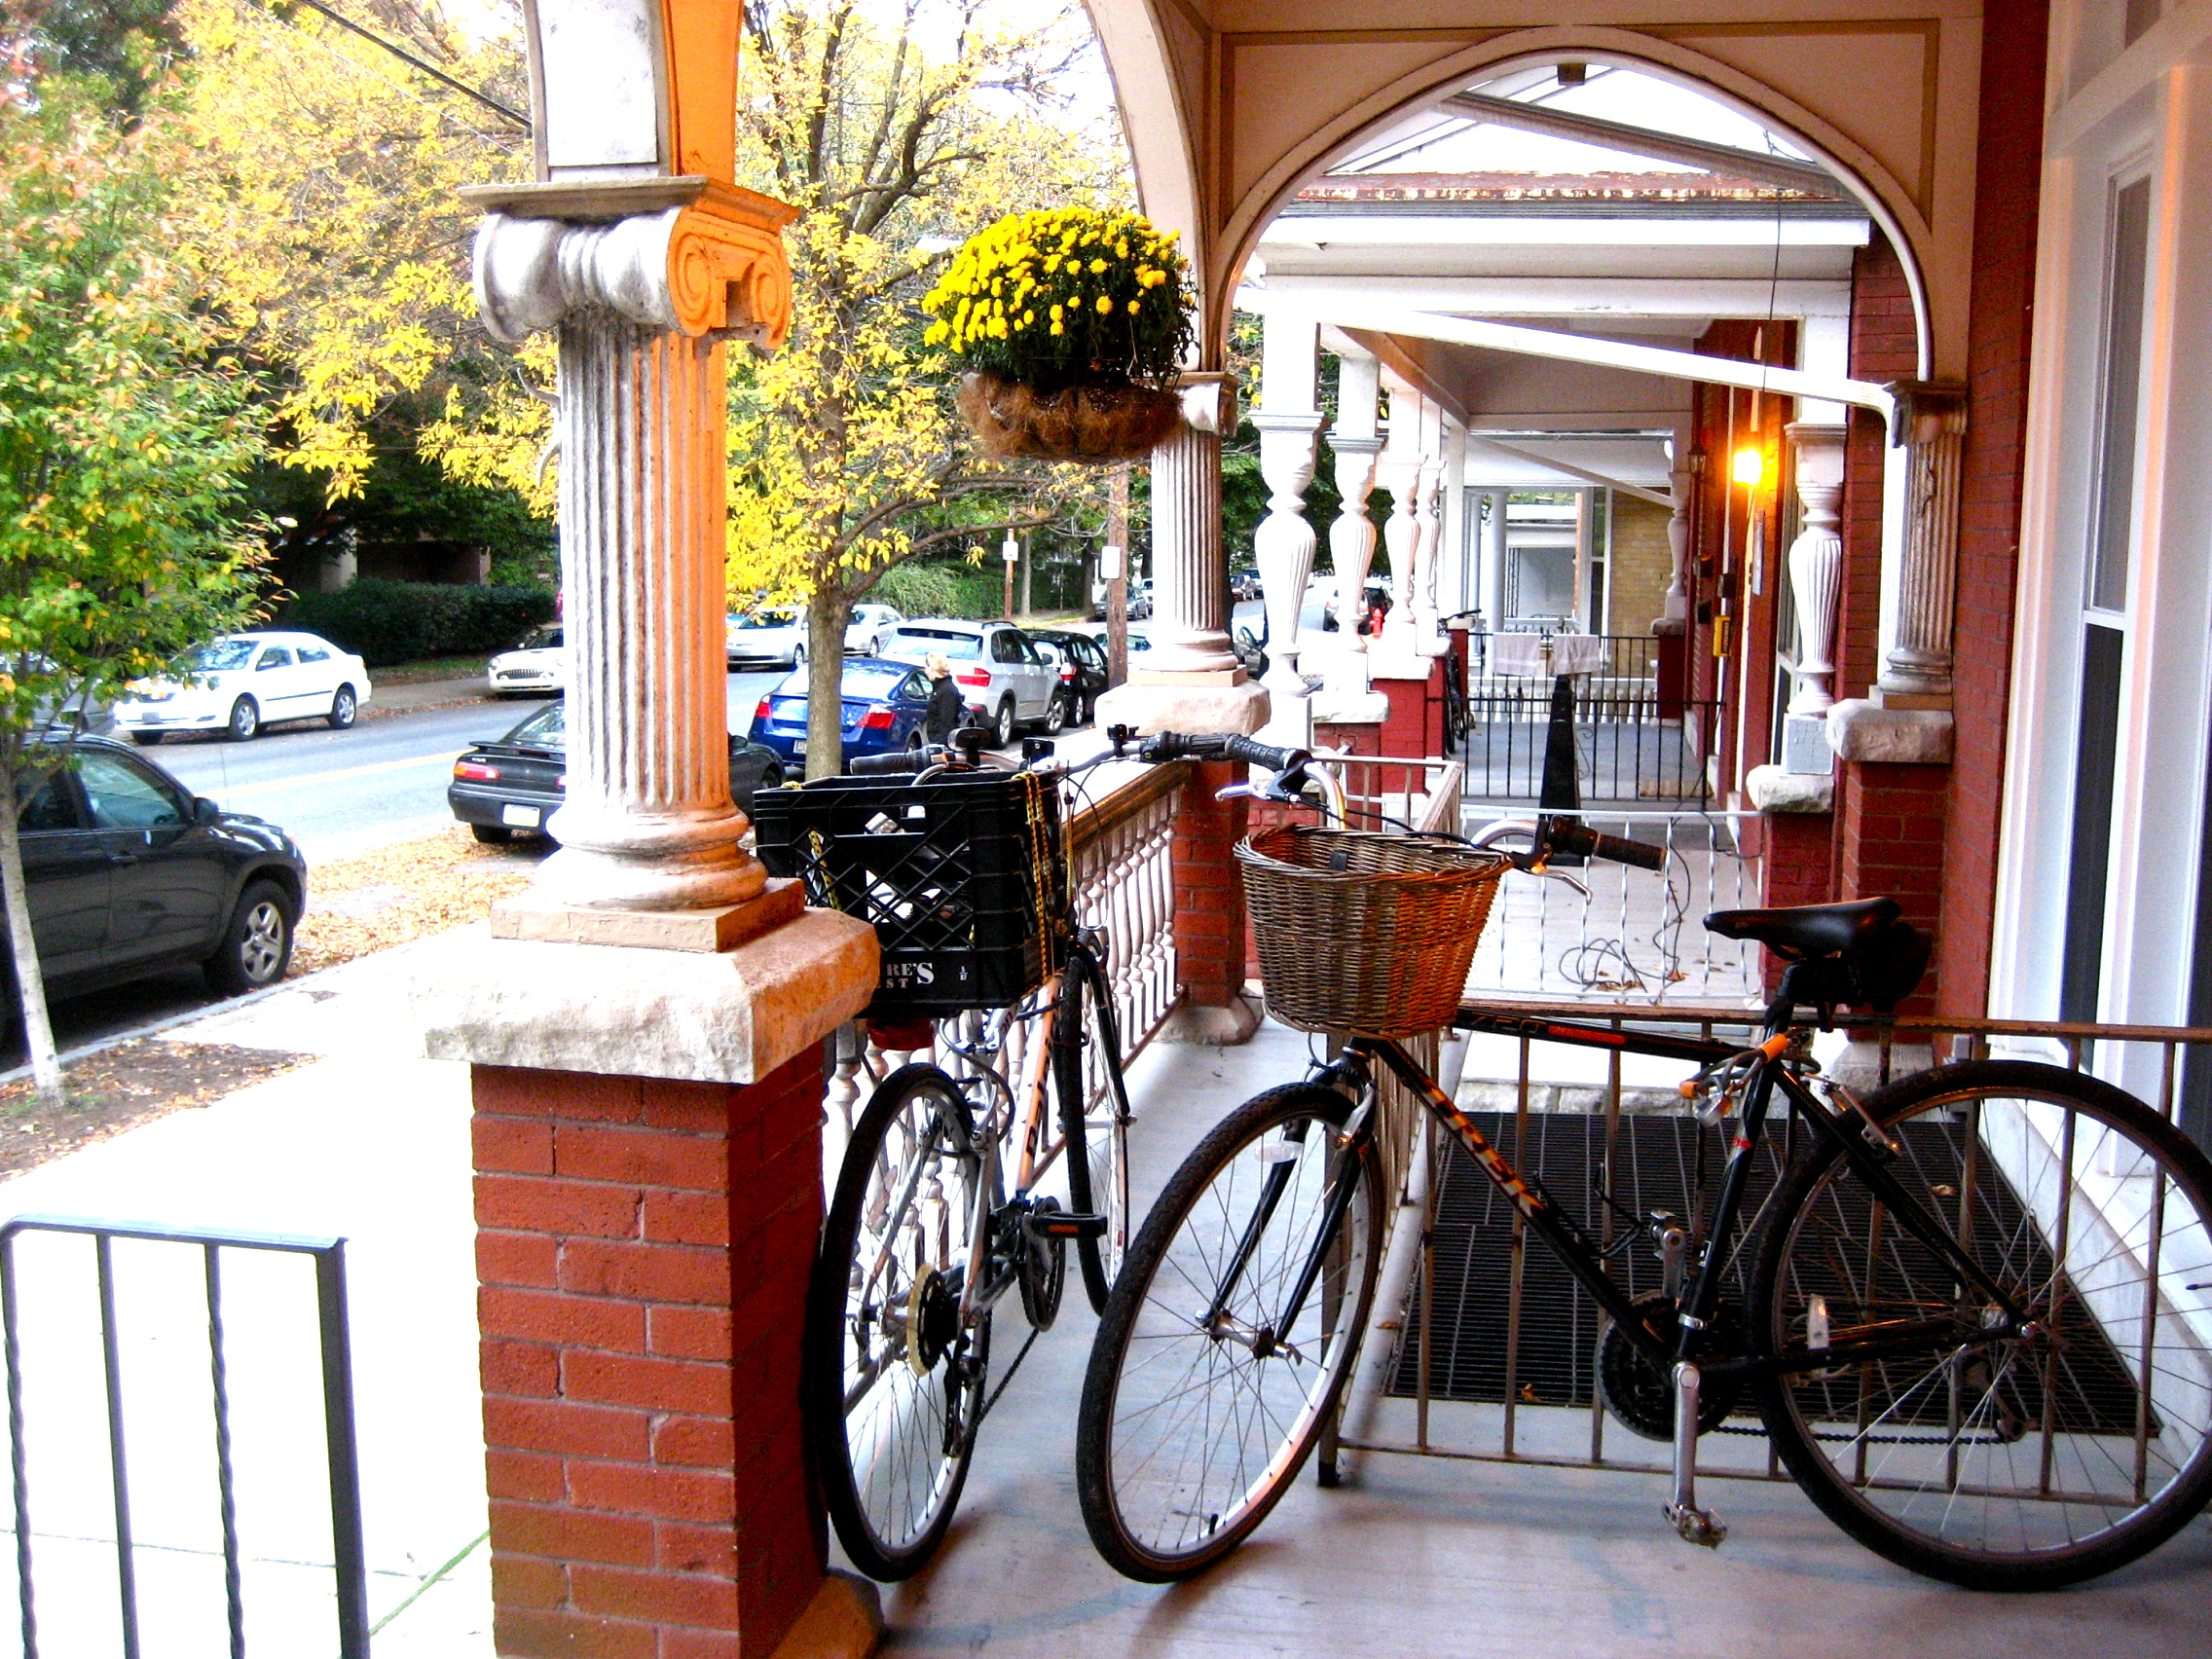 Cafe with bikes.JPG